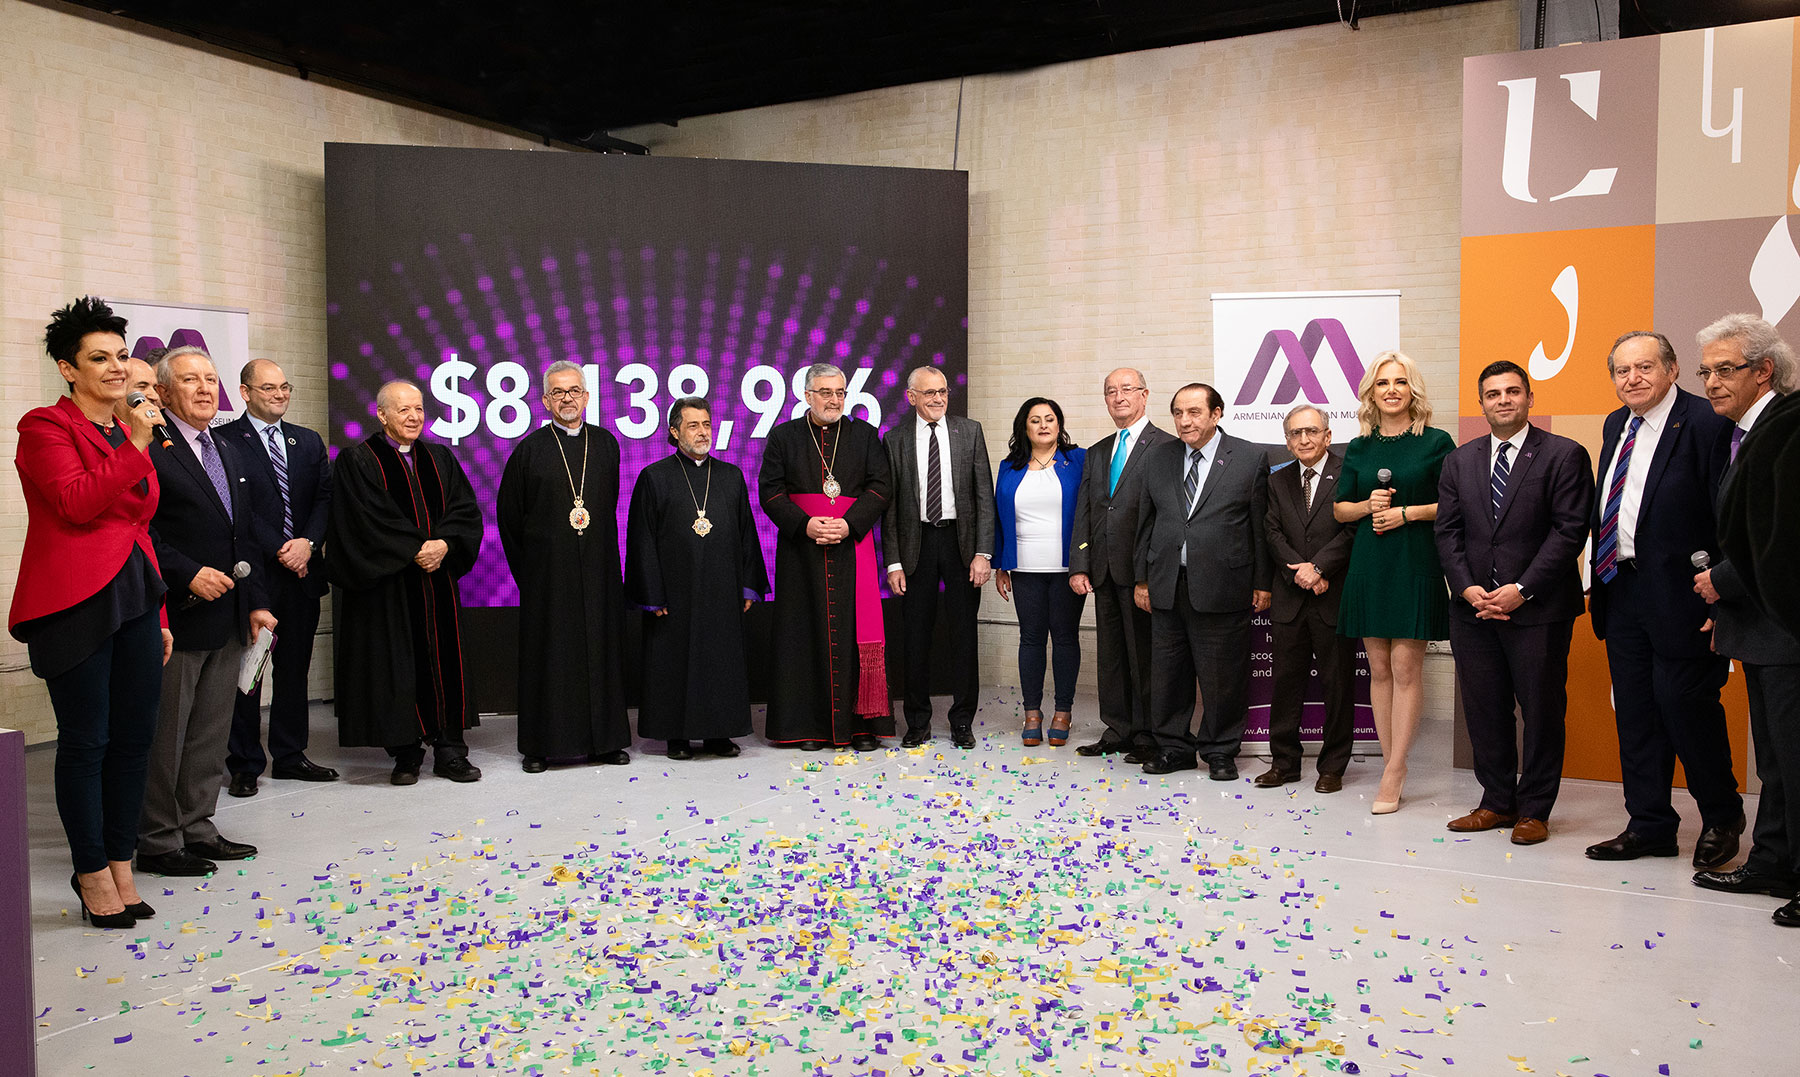 Armenian American Museum Announces $8.1 Million at Inaugural Telethon